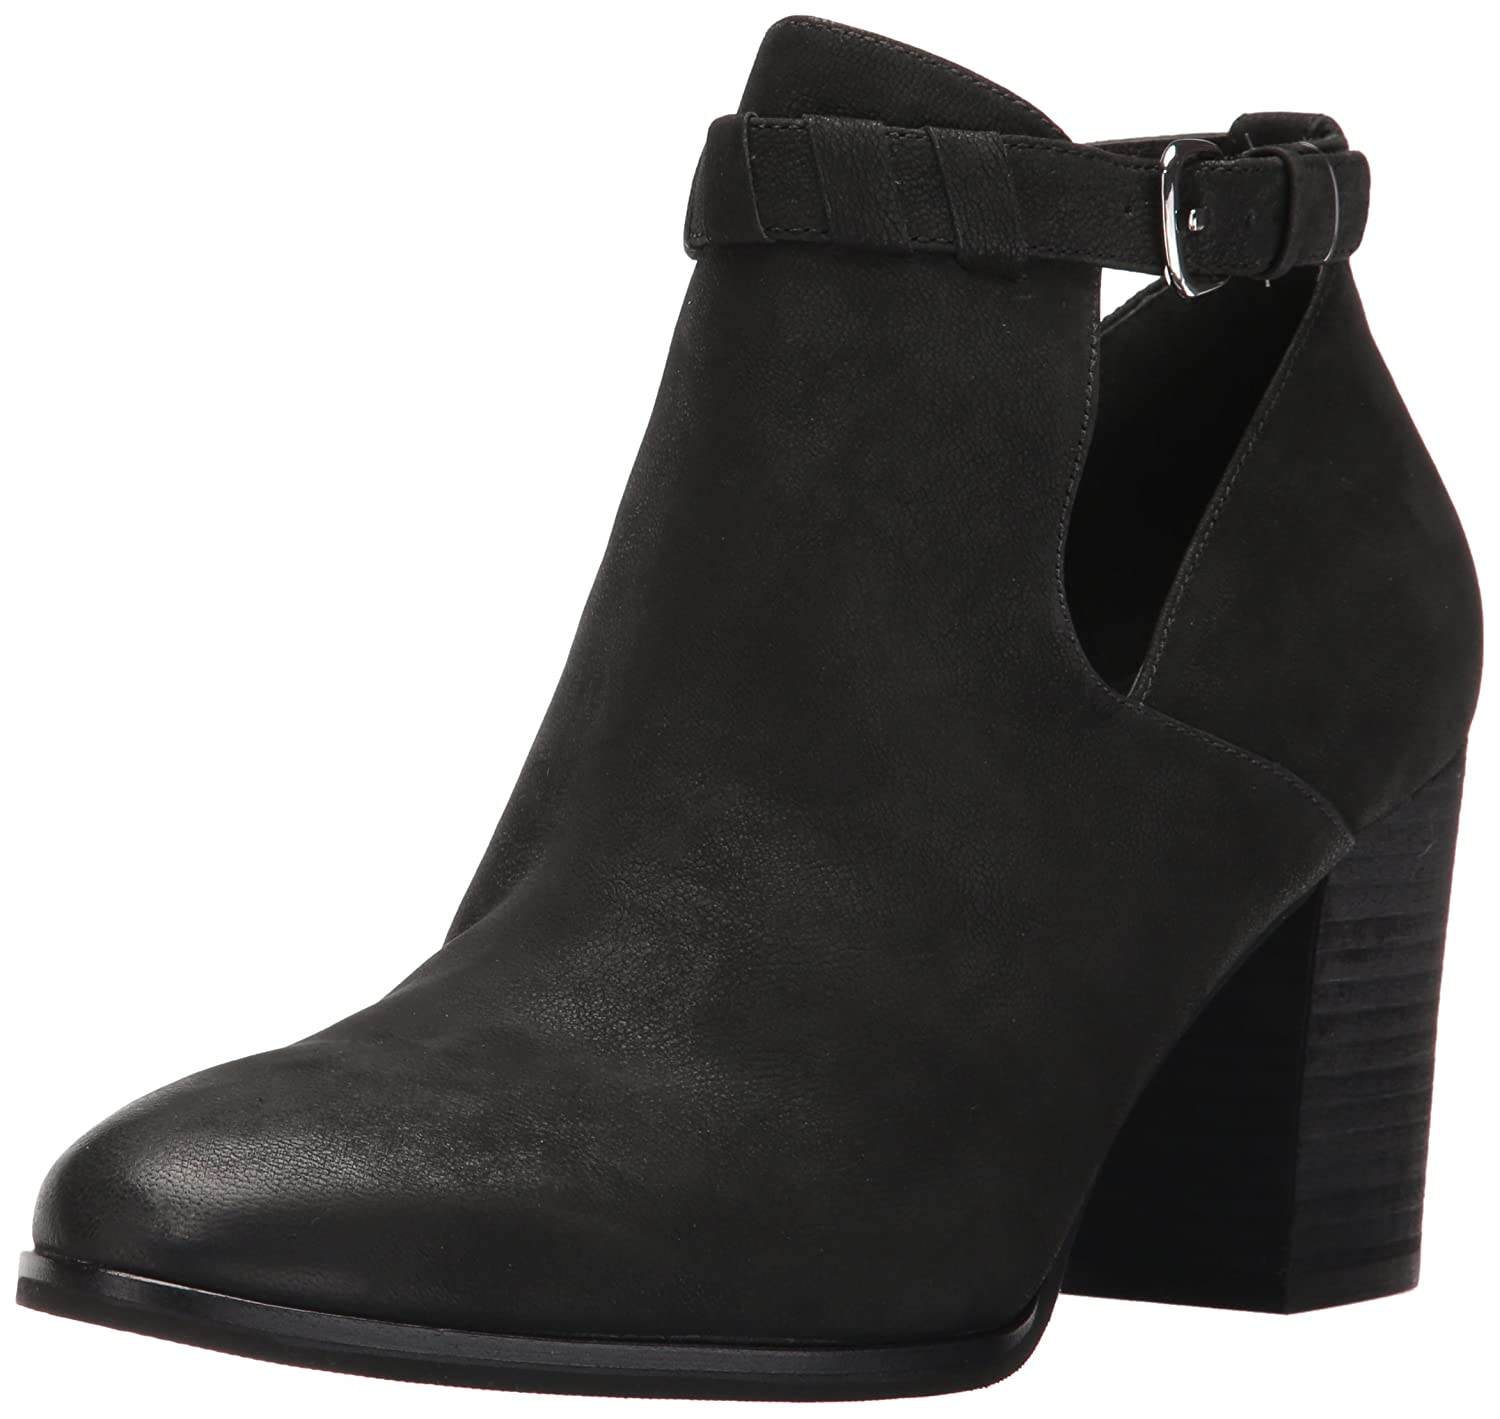 Via Spiga Women's Samantha Bootie Ankle Boot B01NCXD17P 6 M US|Black Nubuck